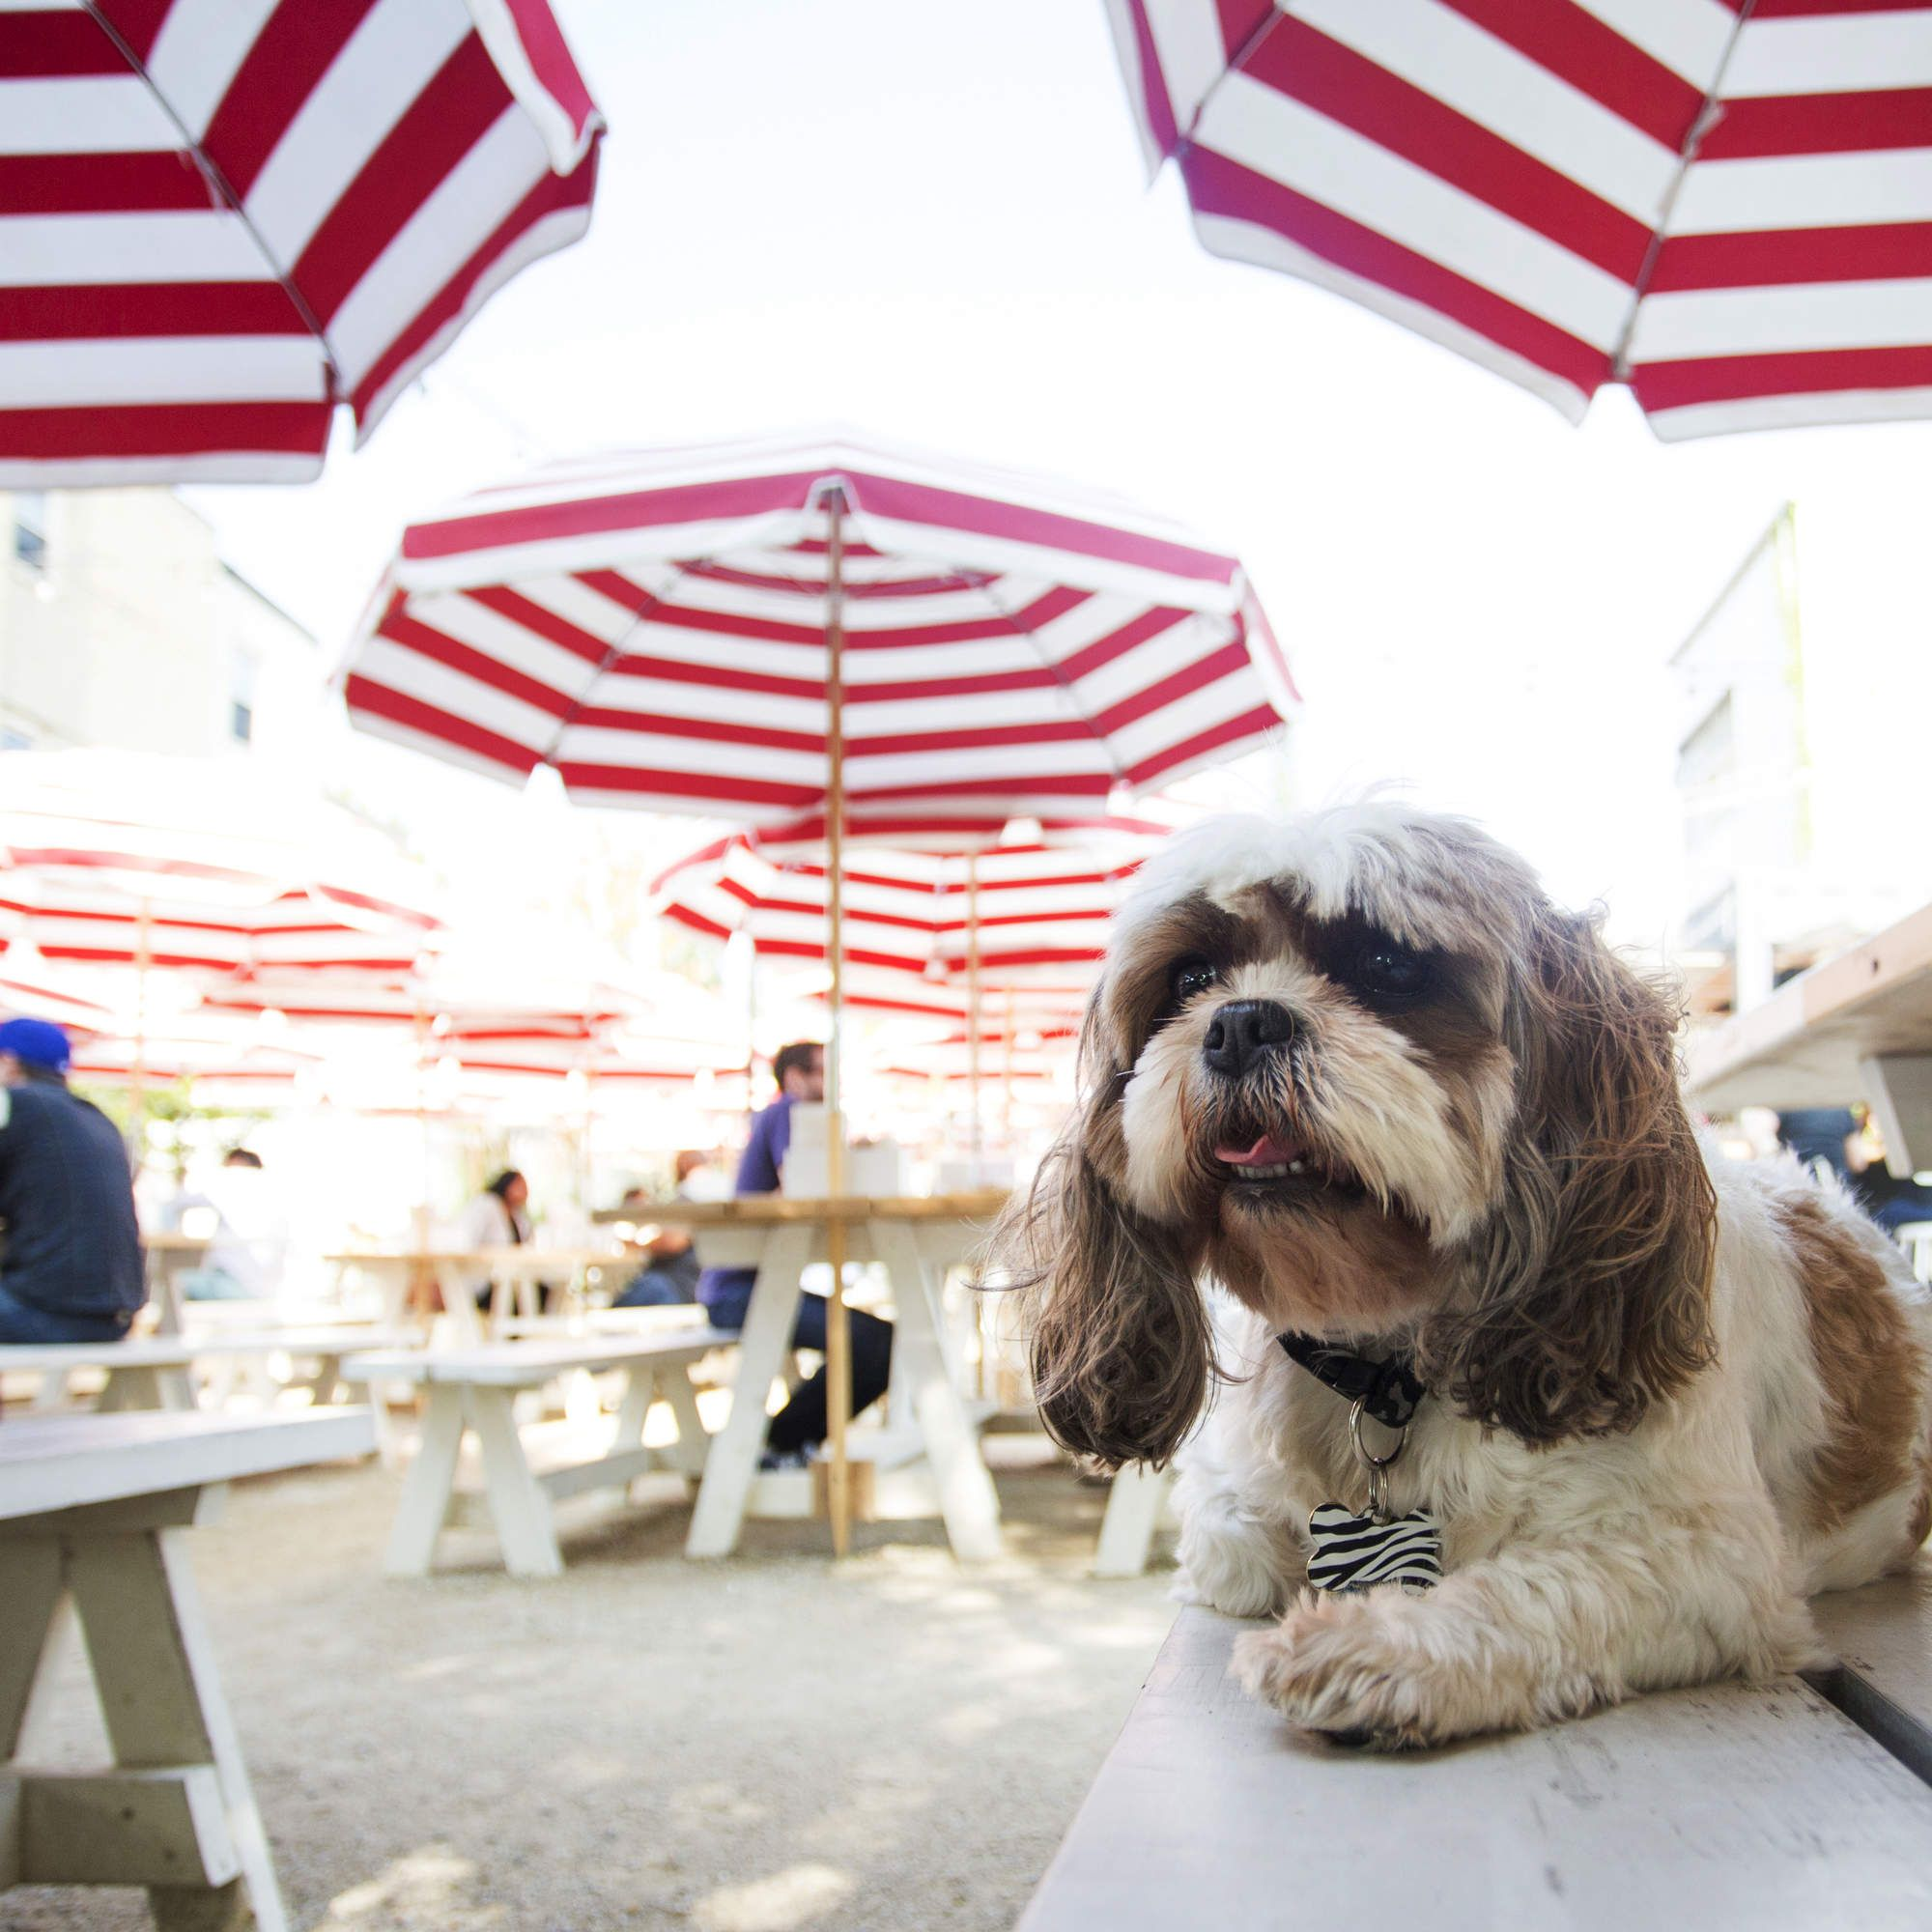 40 Dog Friendly Bars and Restaurants in Chicago